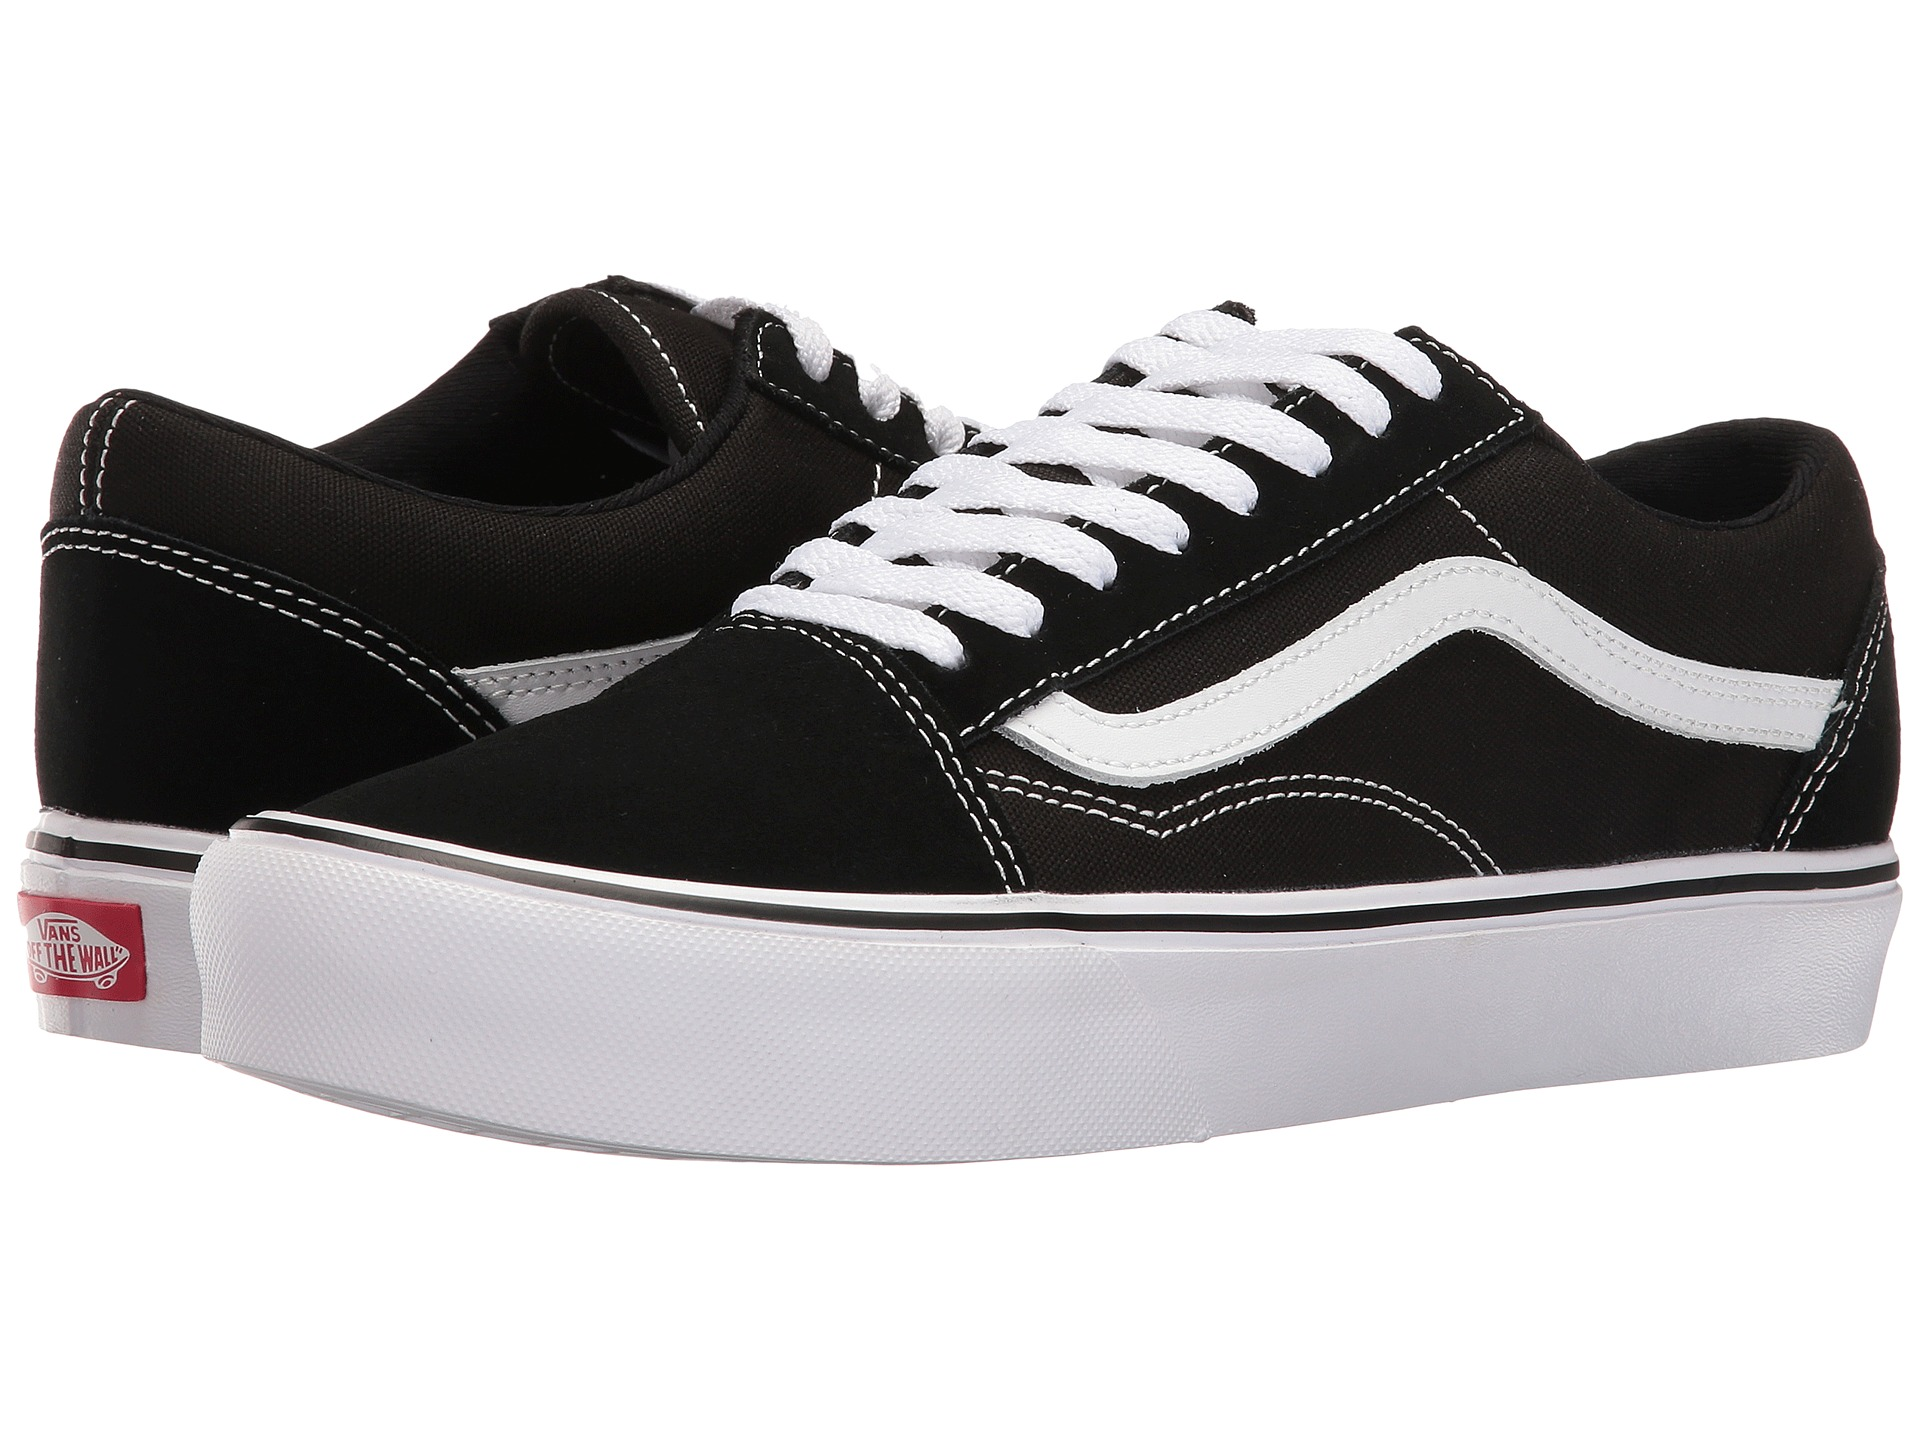 vans old skool singapore map  d37cdc42dc6e